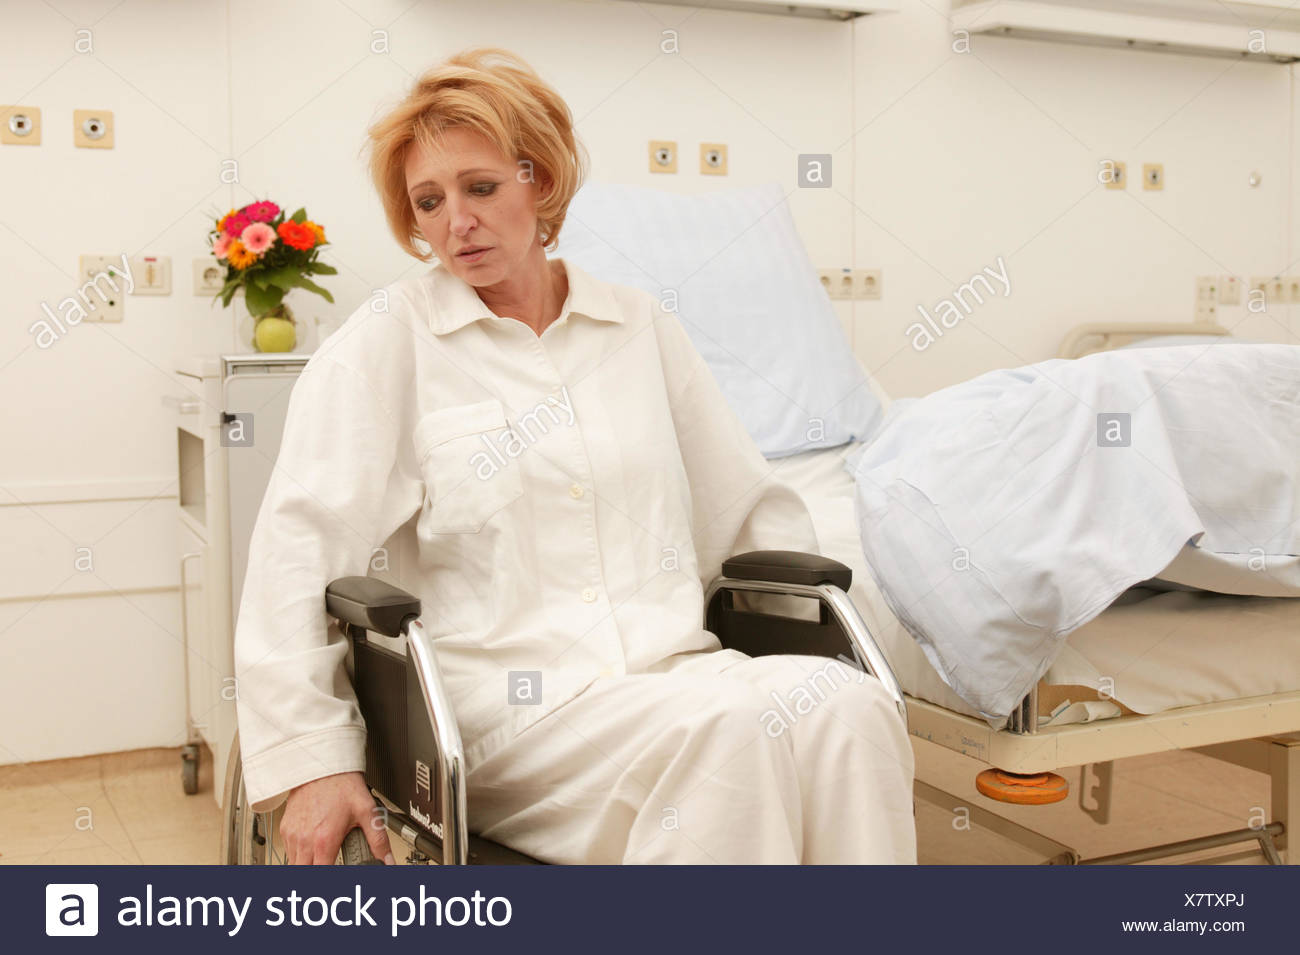 Wards, patient, invalid, wheel chair, sit, suffer sadly, Ti7, medicine, hospital, clinic, hospital, ward, bed, disease, hospitalisation, convalescense, health, woman, 40-50 years, invalid, feet, impediment, hemiplegia, destiny, grief, worries facial play, emotion, view lowered, ailment, - Stock Image